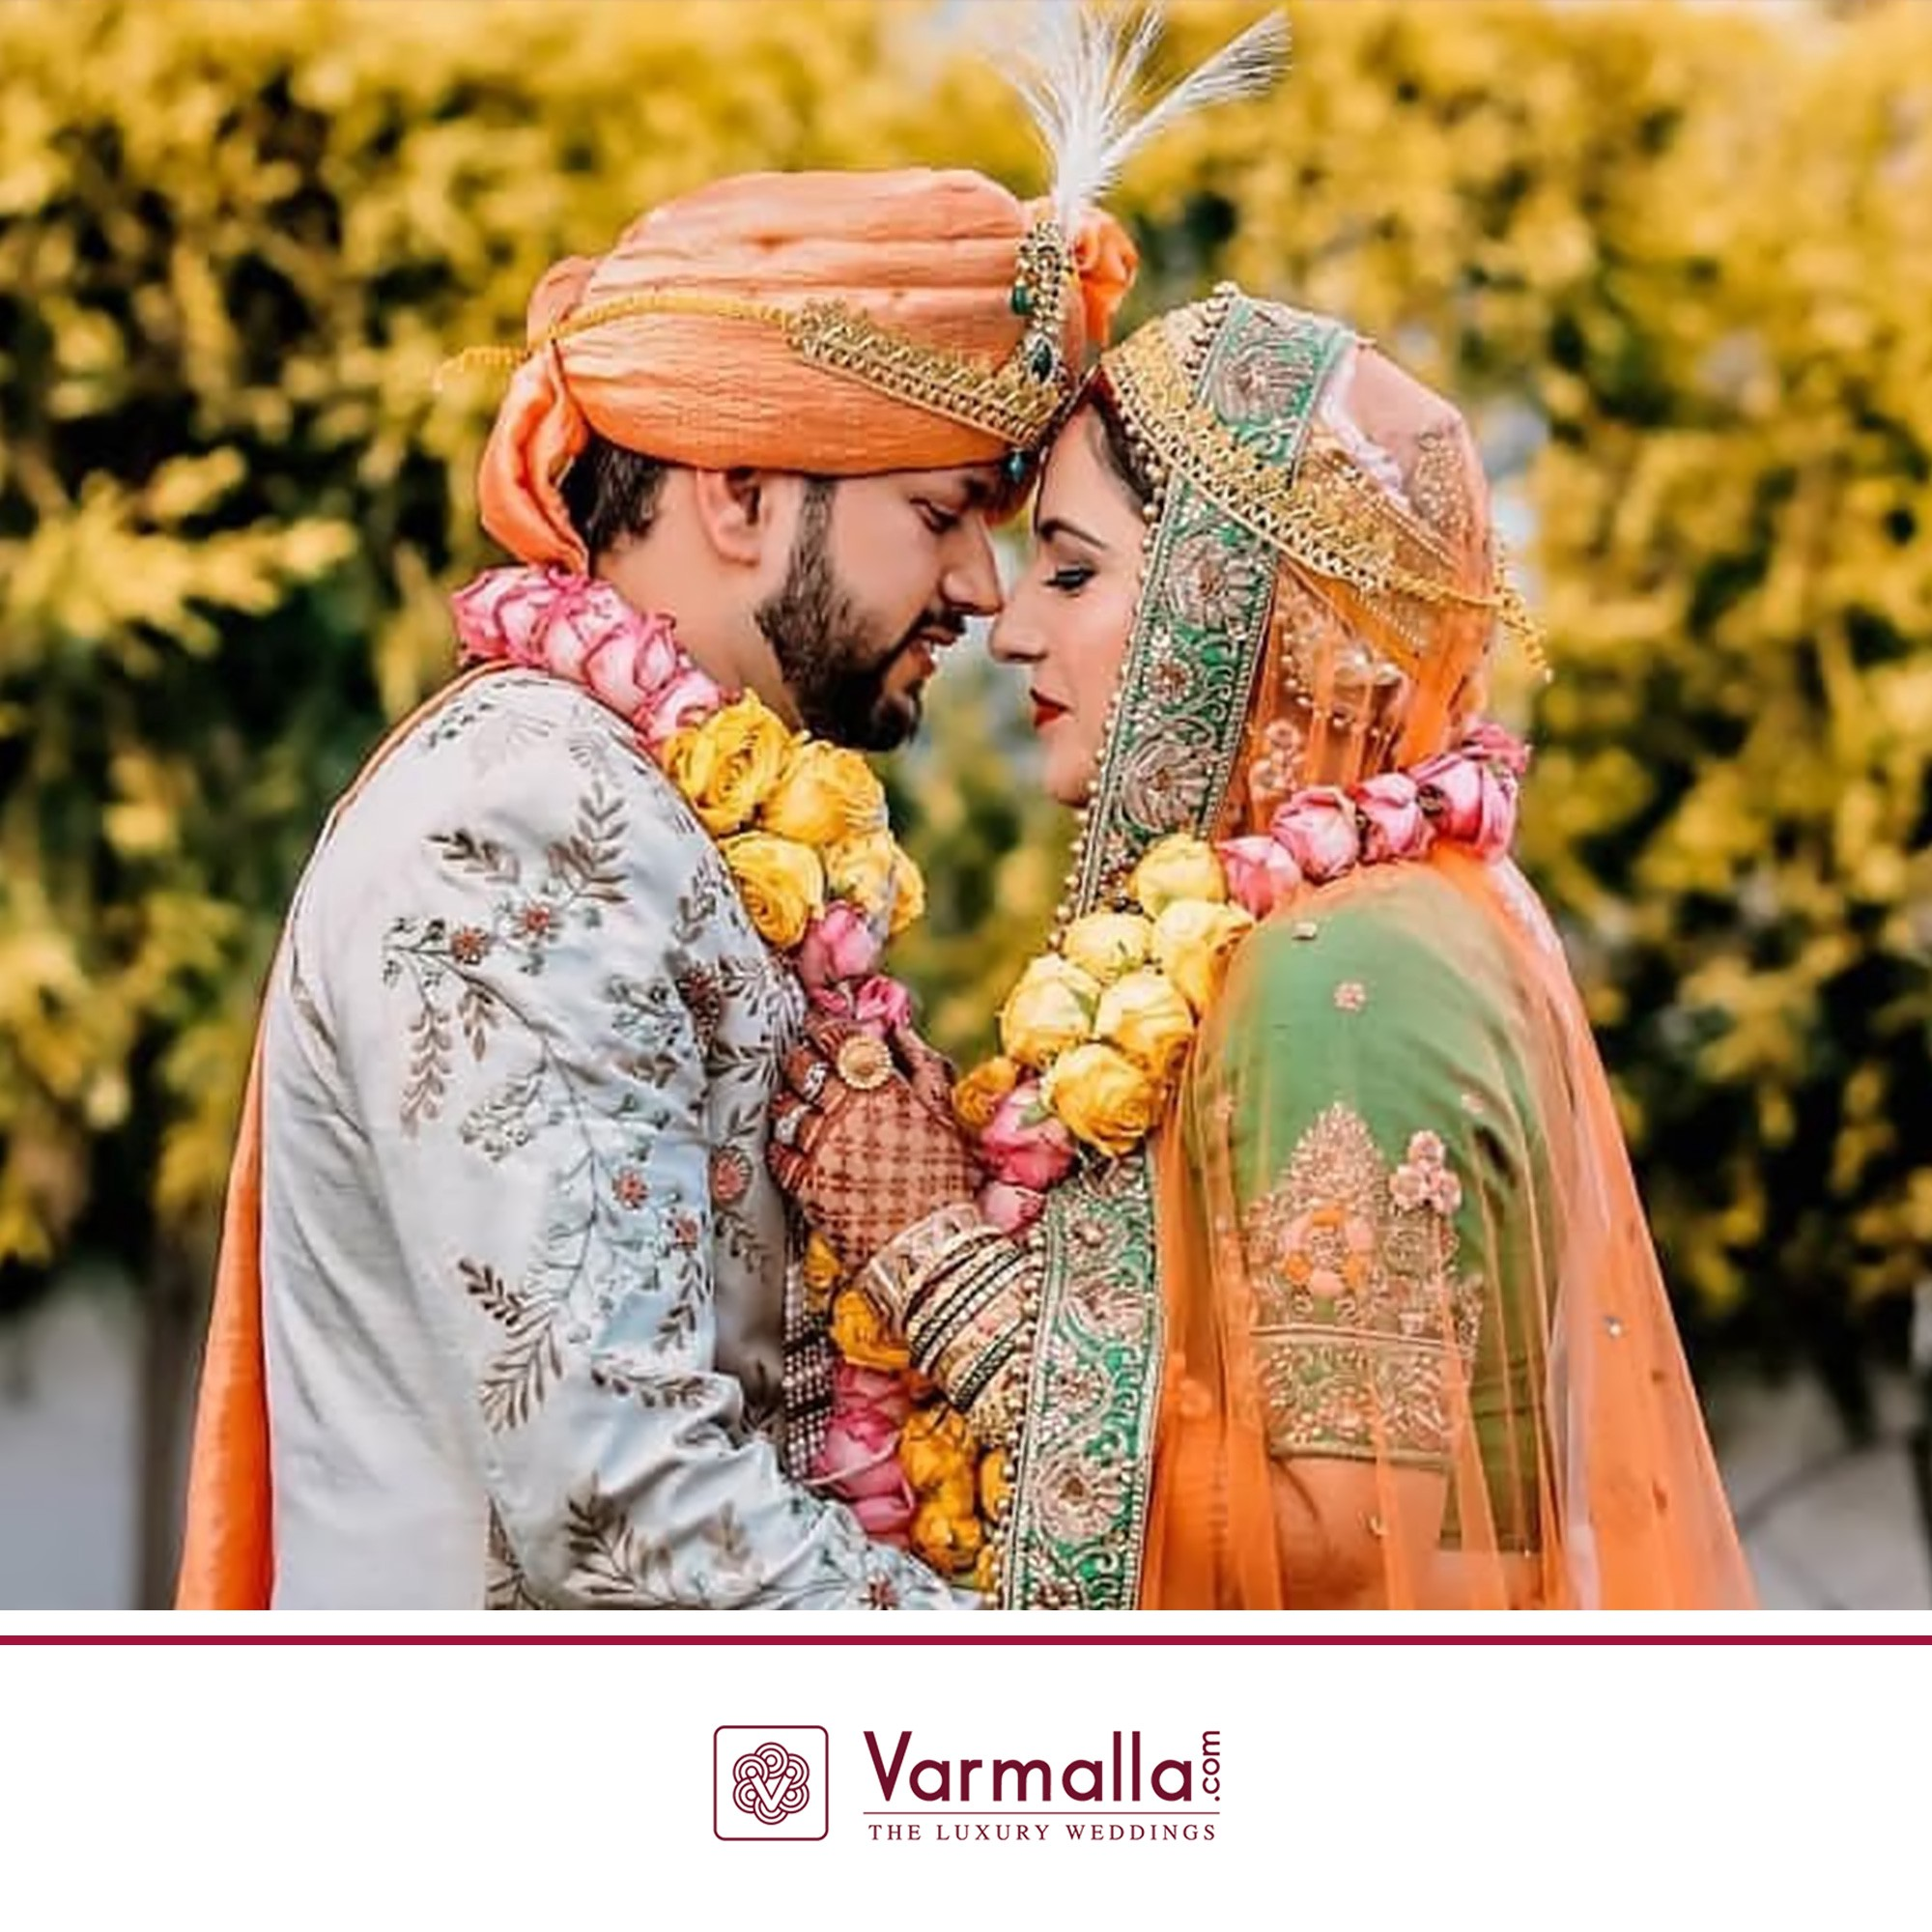 Wedding Couple Goals For Those Who Believed In The Power Of By Varmalla Official Medium